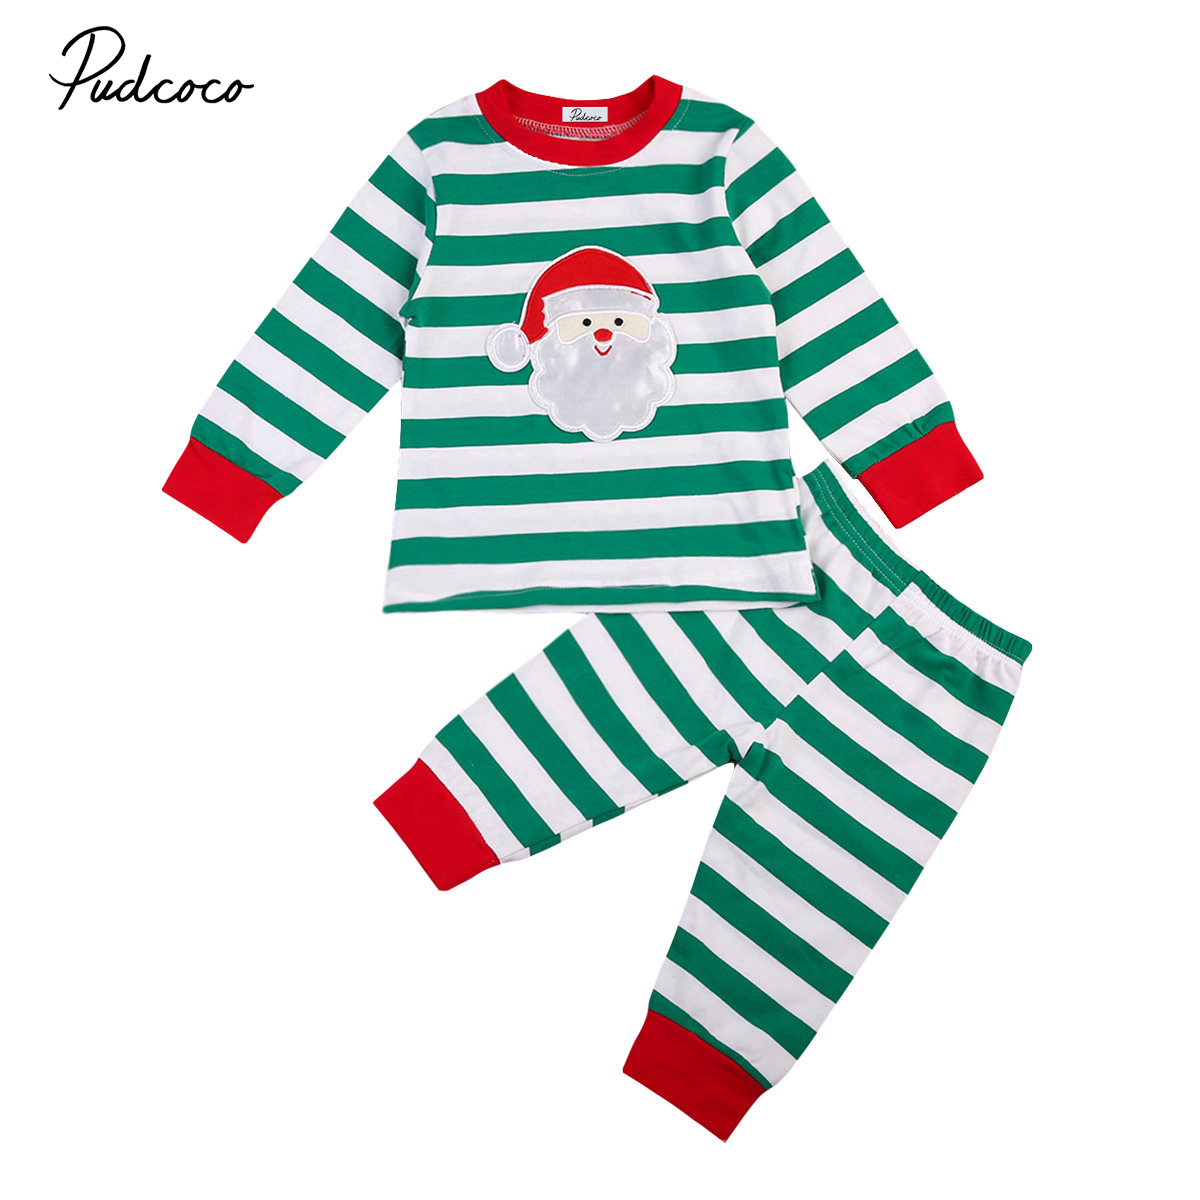 2017 Christmas Family Baby Kid Boys Girls Santa Claus Pattern Striped Long Sleeve Sleepwear Pajamas Winter Clothing Outfit my 1st christmas santa claus white top minnie dot petal skirt girls outfit nb 8y